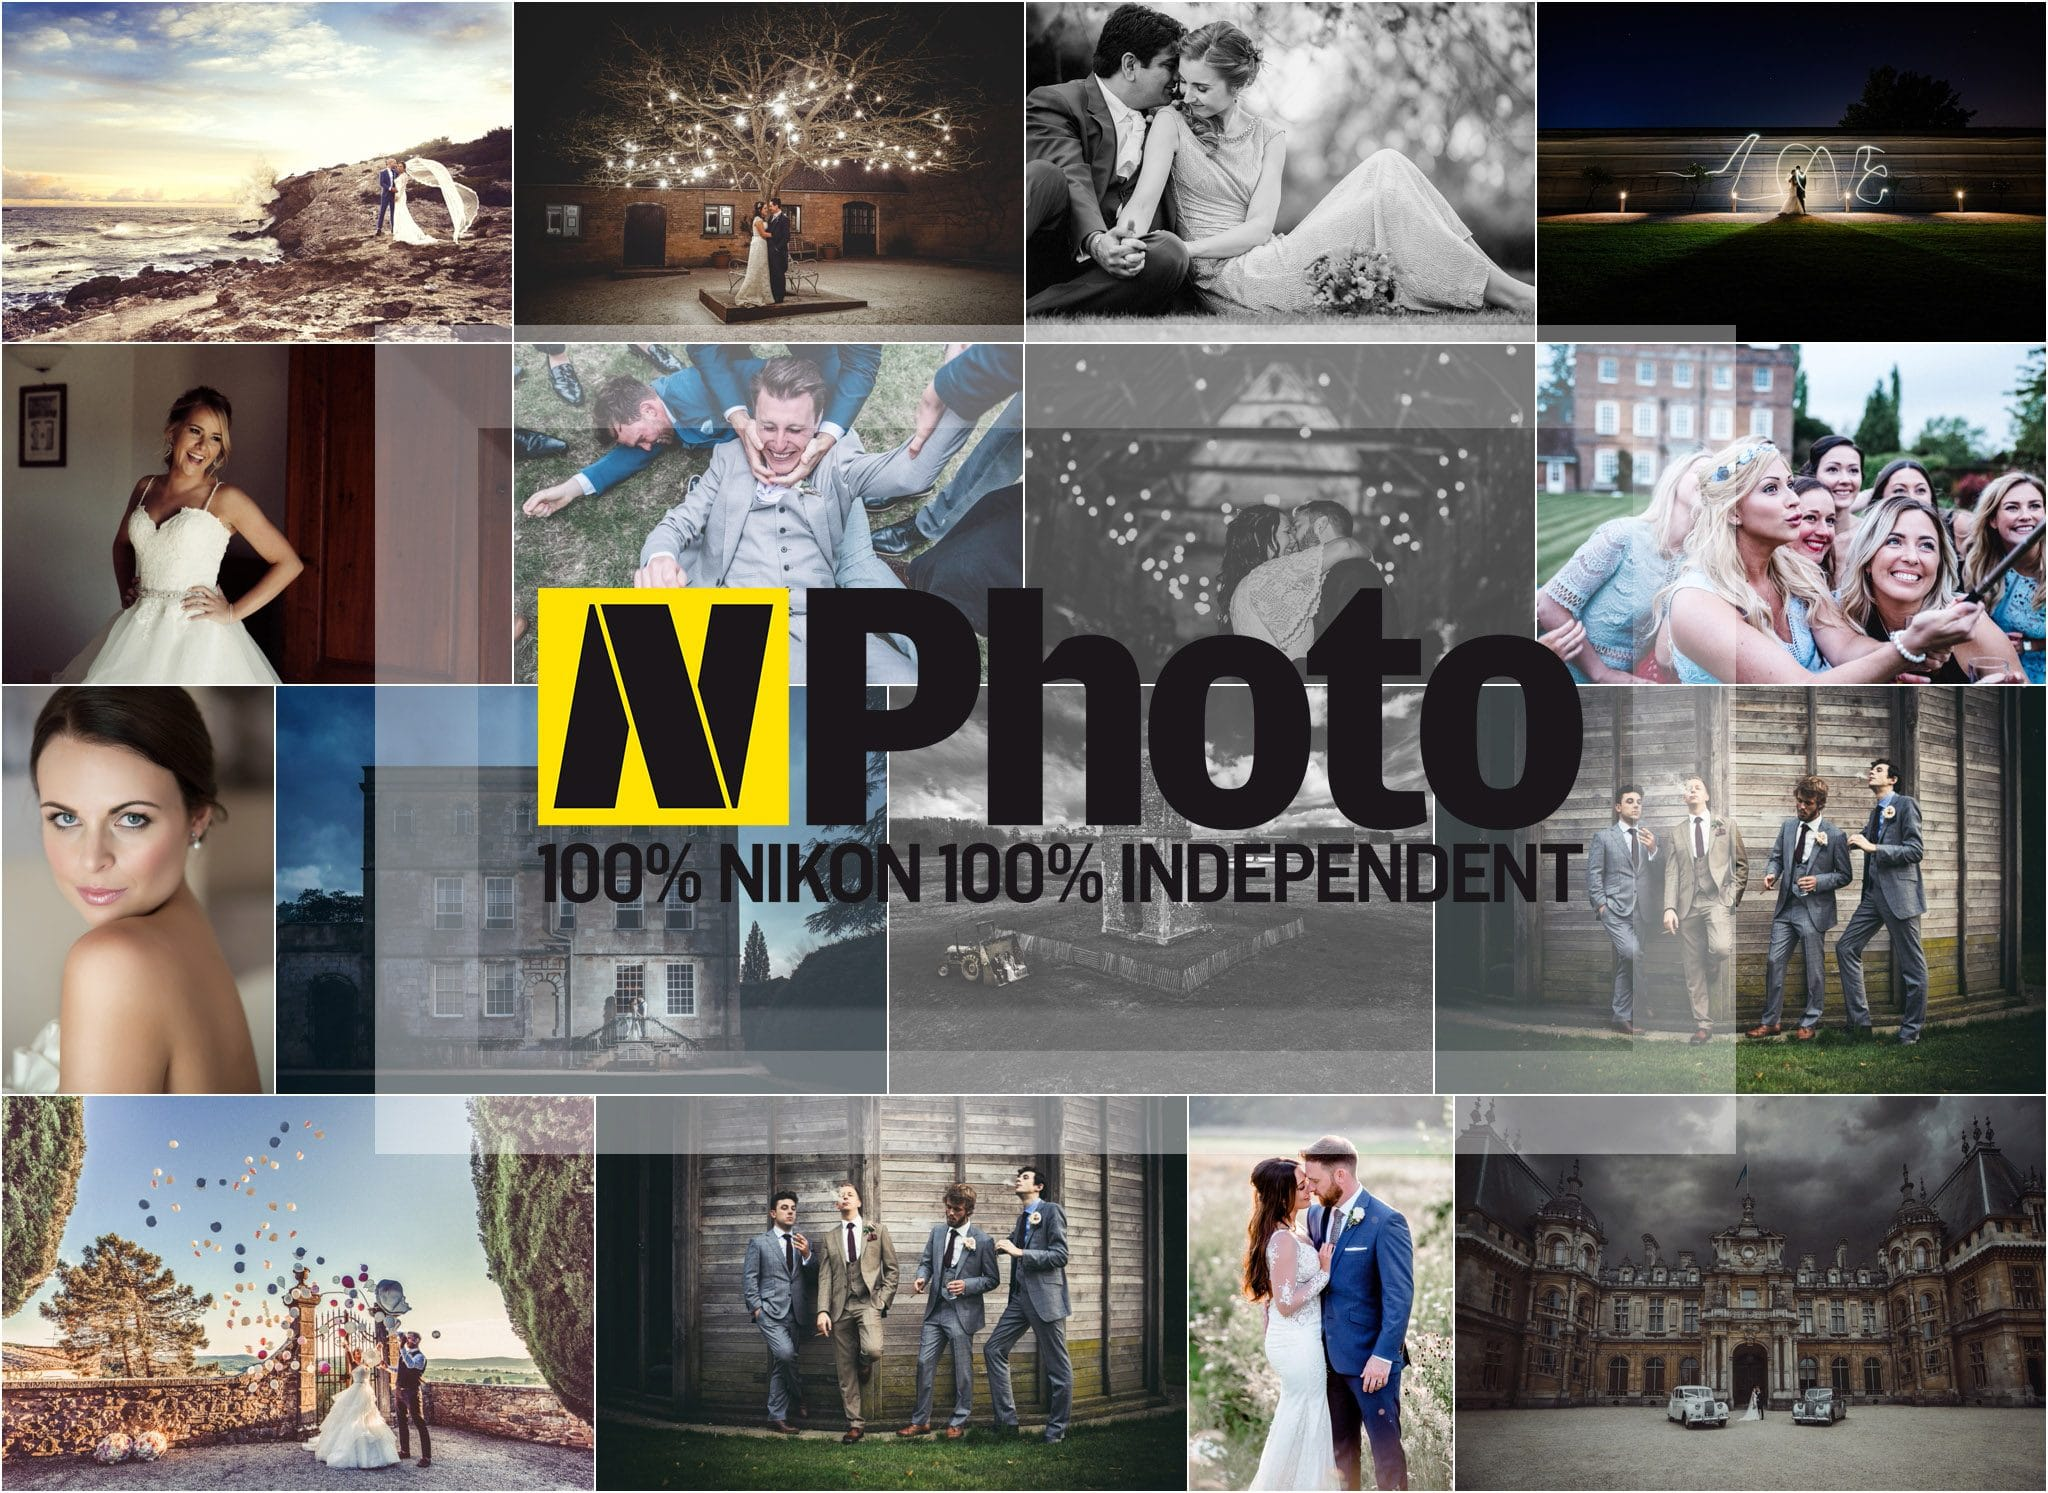 how to shoot a wedding, wedding photography training